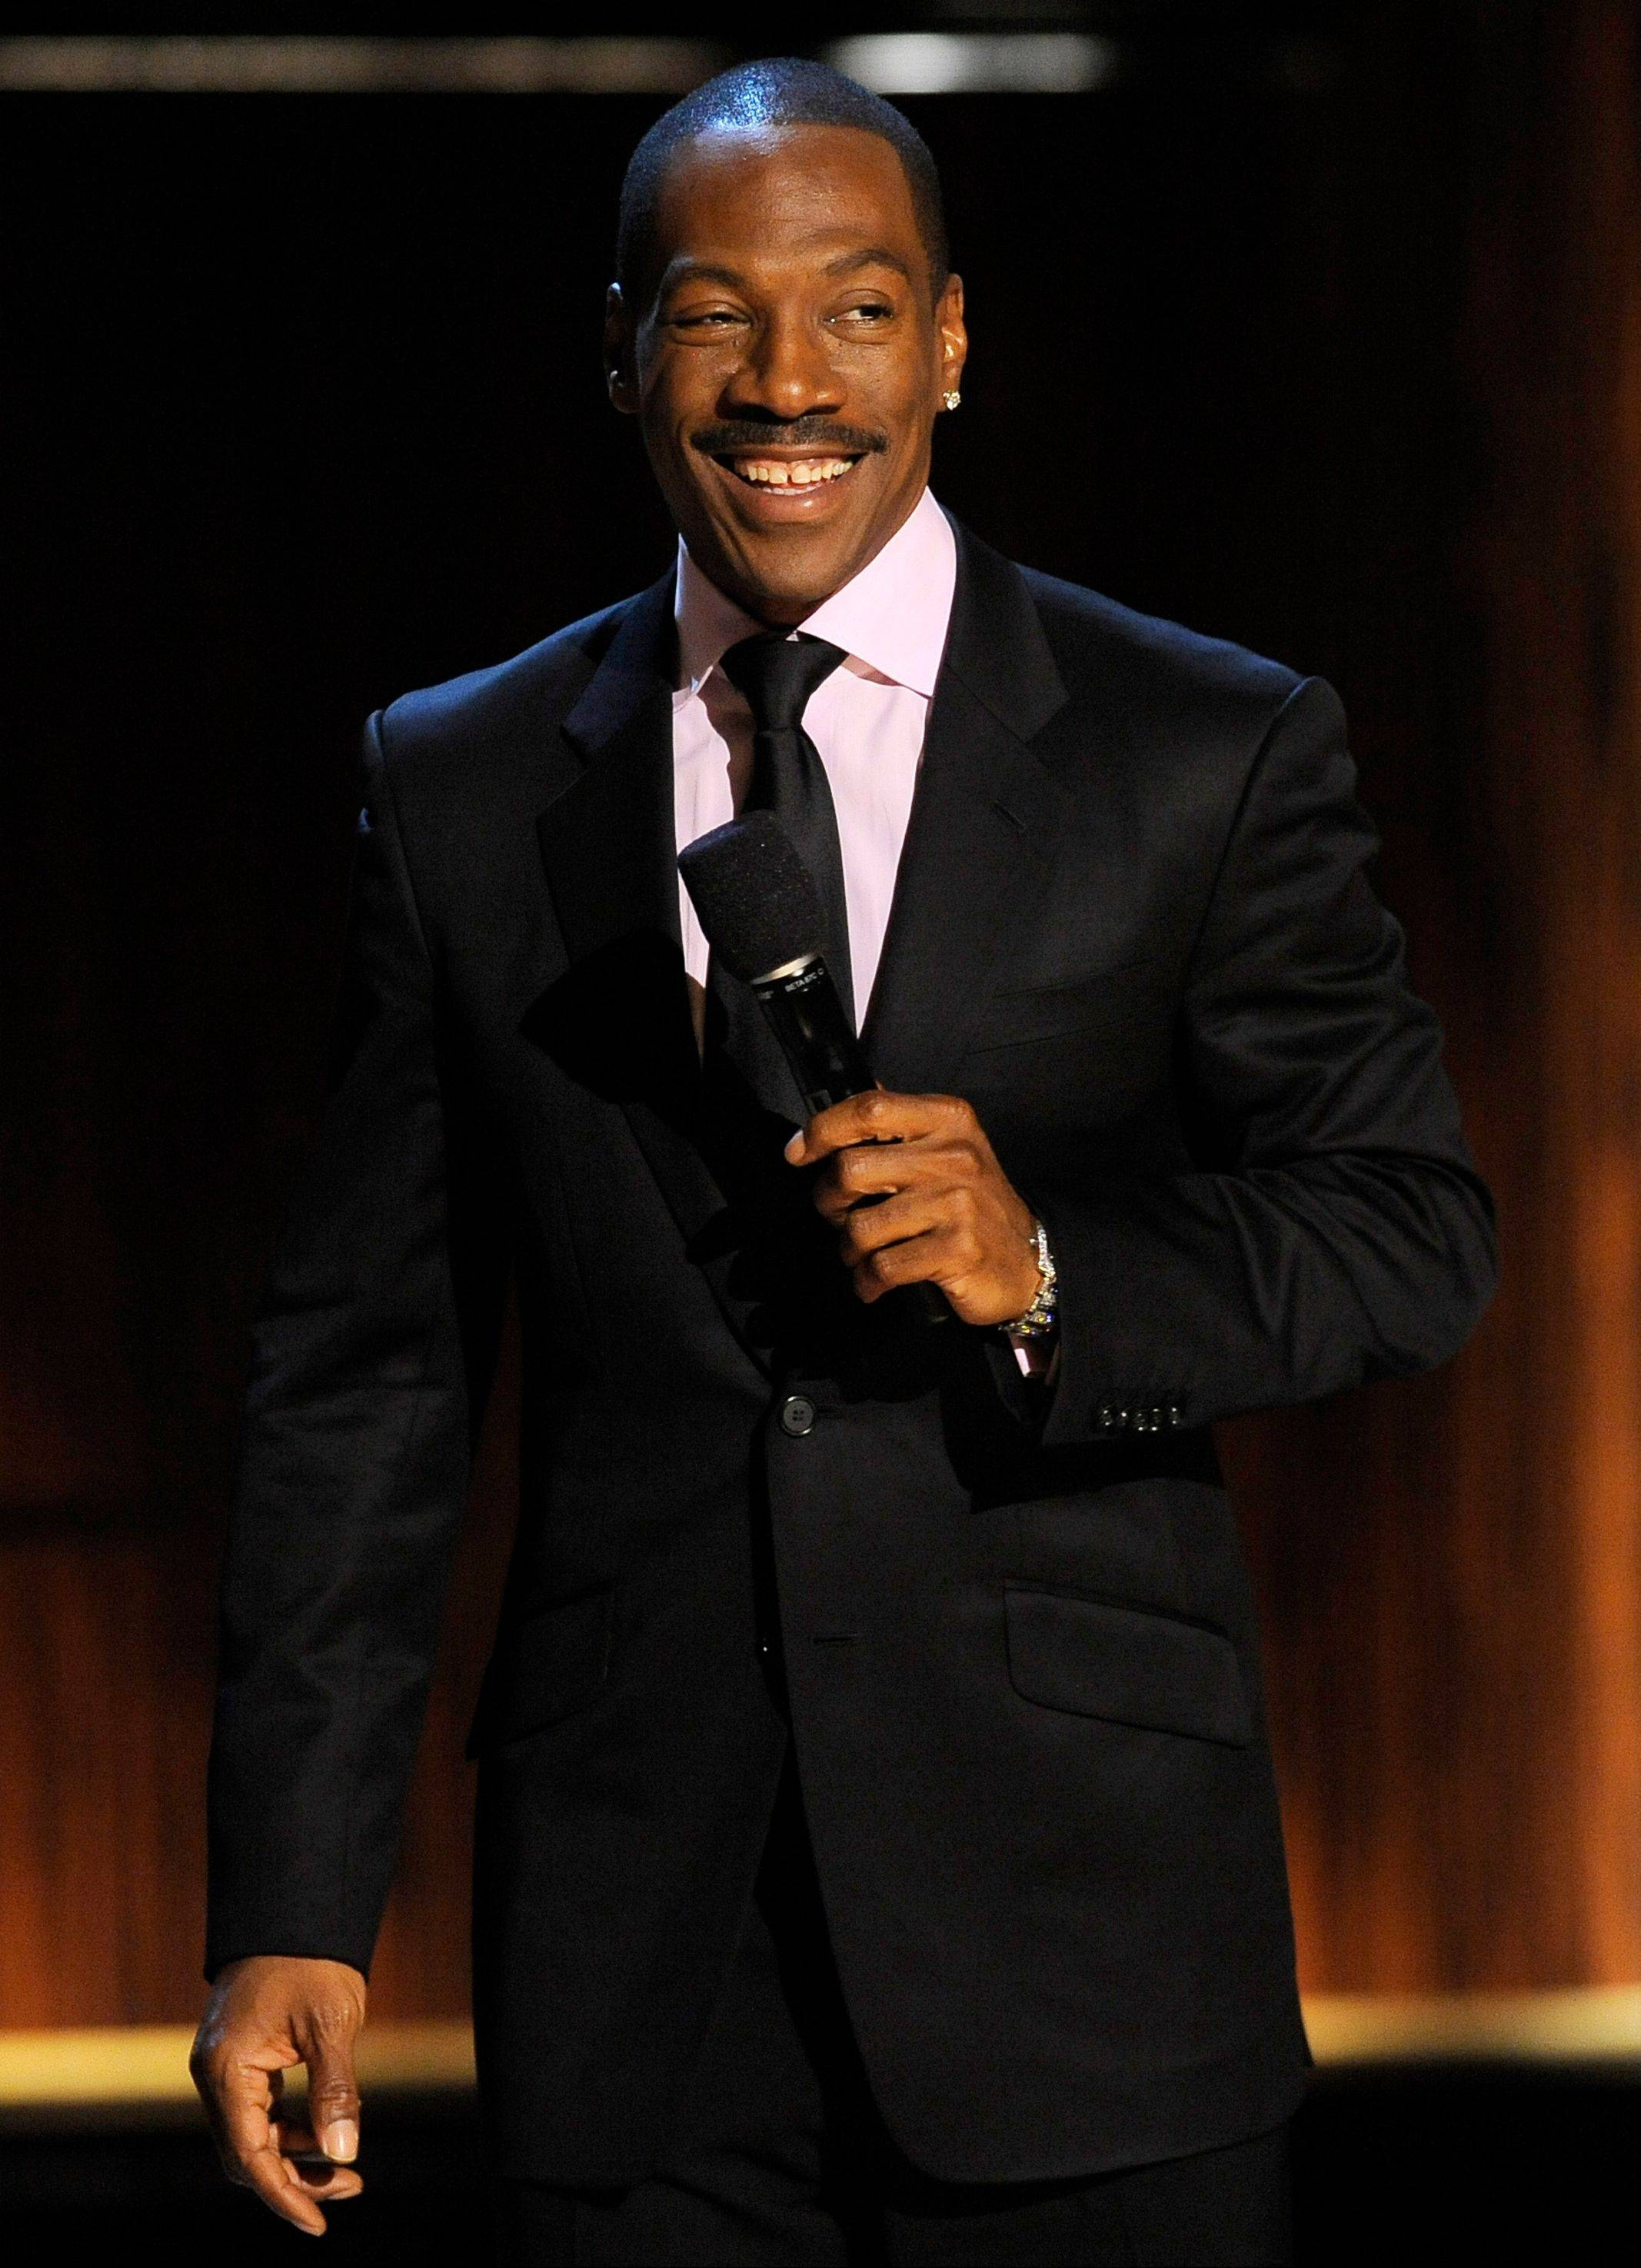 Eddie Murphy addresses the audience at the close of �Eddie Murphy: One Night Only,� a celebration of Murphy�s career at the Saban Theater in Beverly Hills.